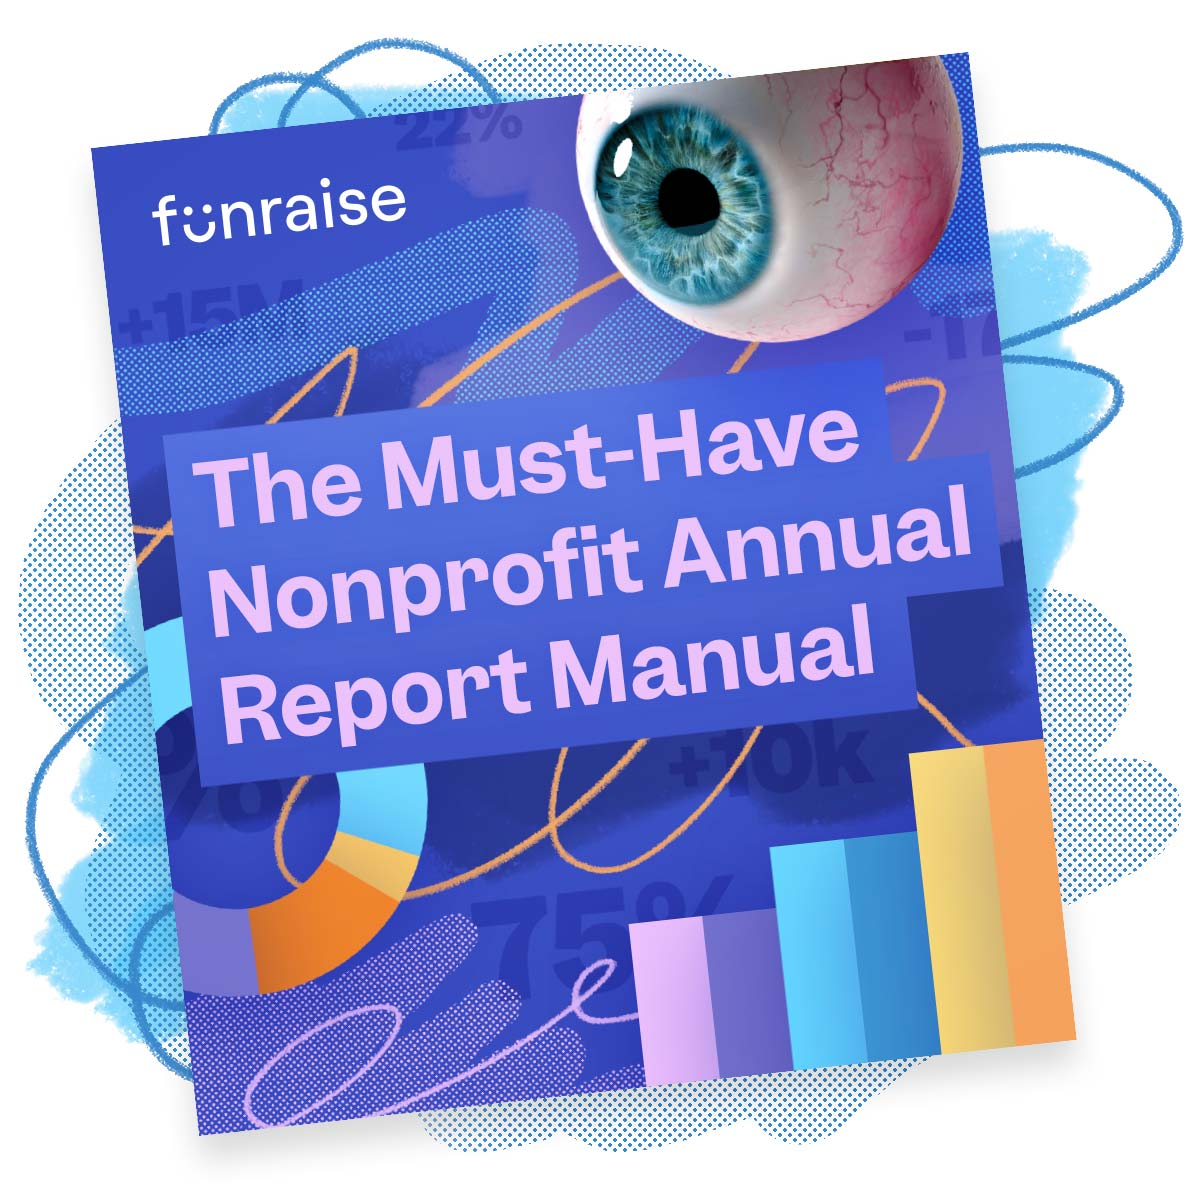 Download The Must-Have Nonprofit Annual Report Manual from Funraise